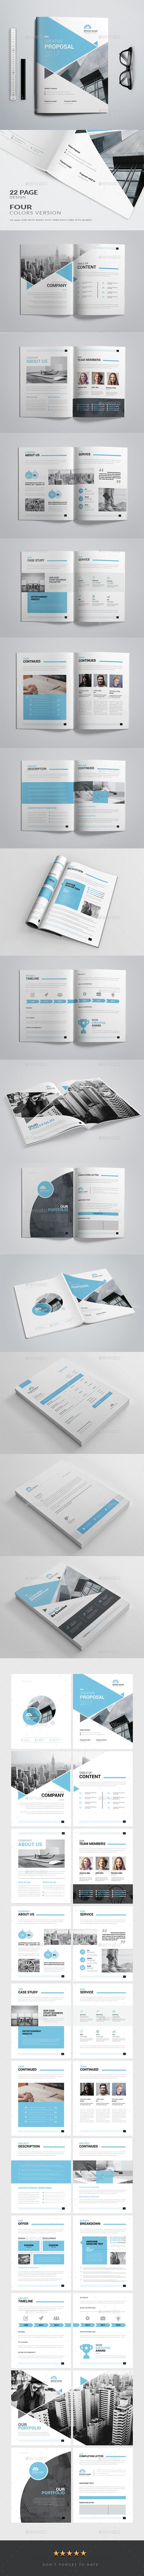 Proposal — InDesign INDD #identity #brochure • Available here → https://graphicriver.net/item/proposal/20691324?ref=pxcr